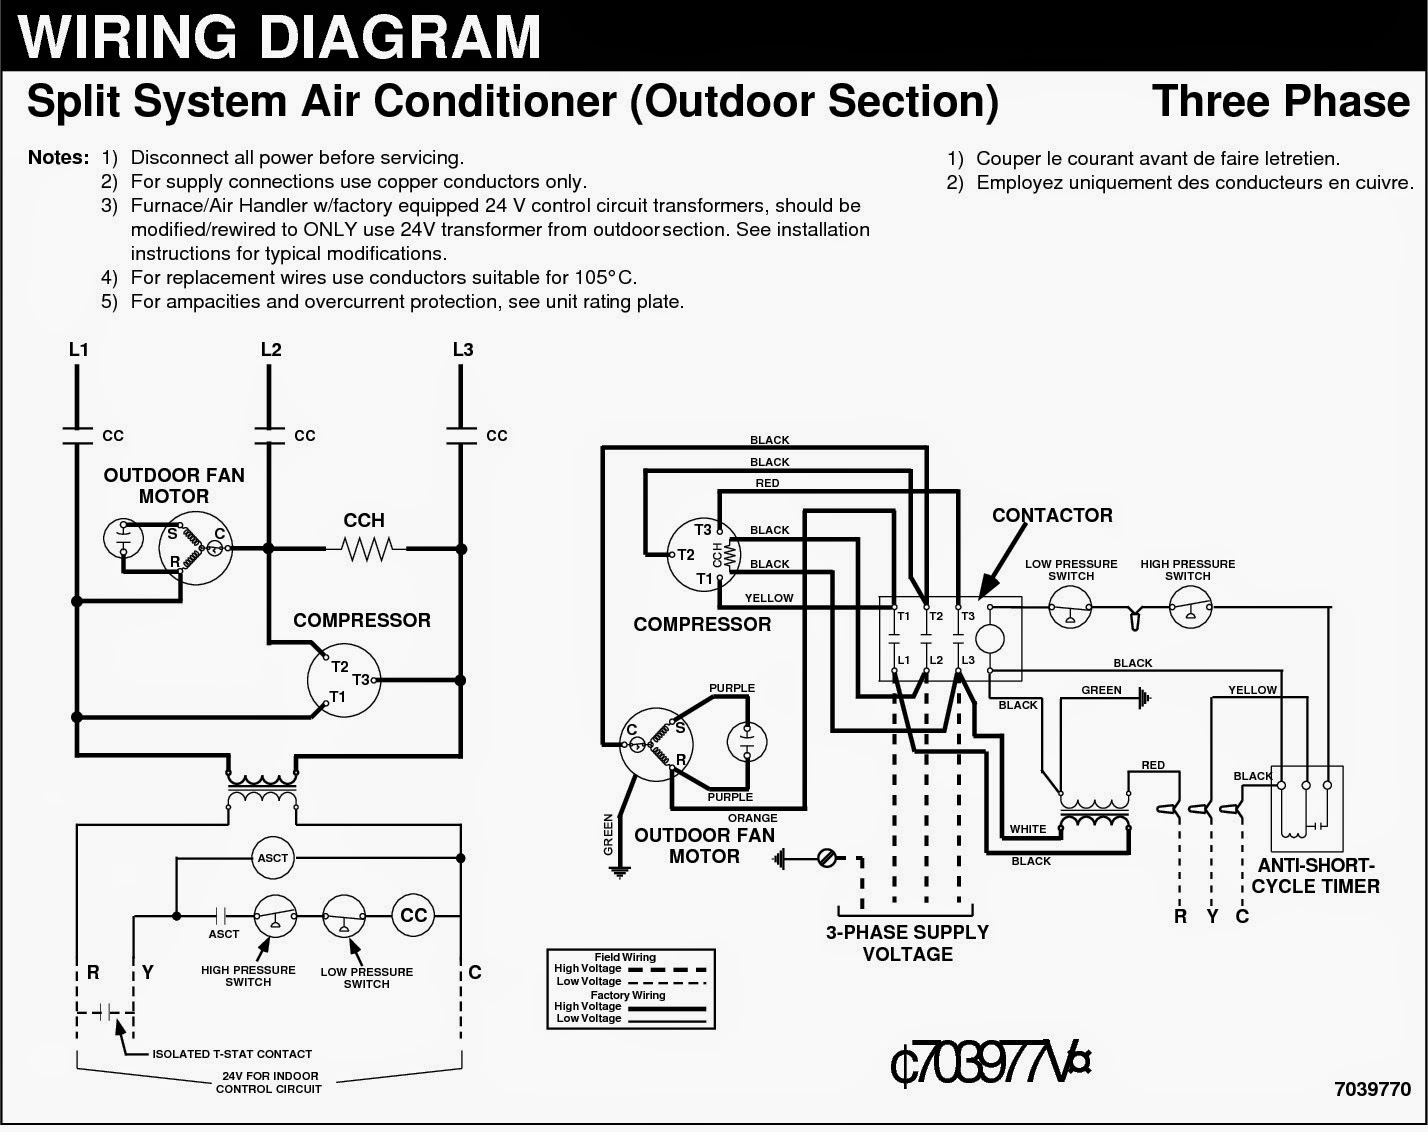 3+phase electrical wiring diagrams for air conditioning systems part two samsung air conditioner wiring diagram at bayanpartner.co